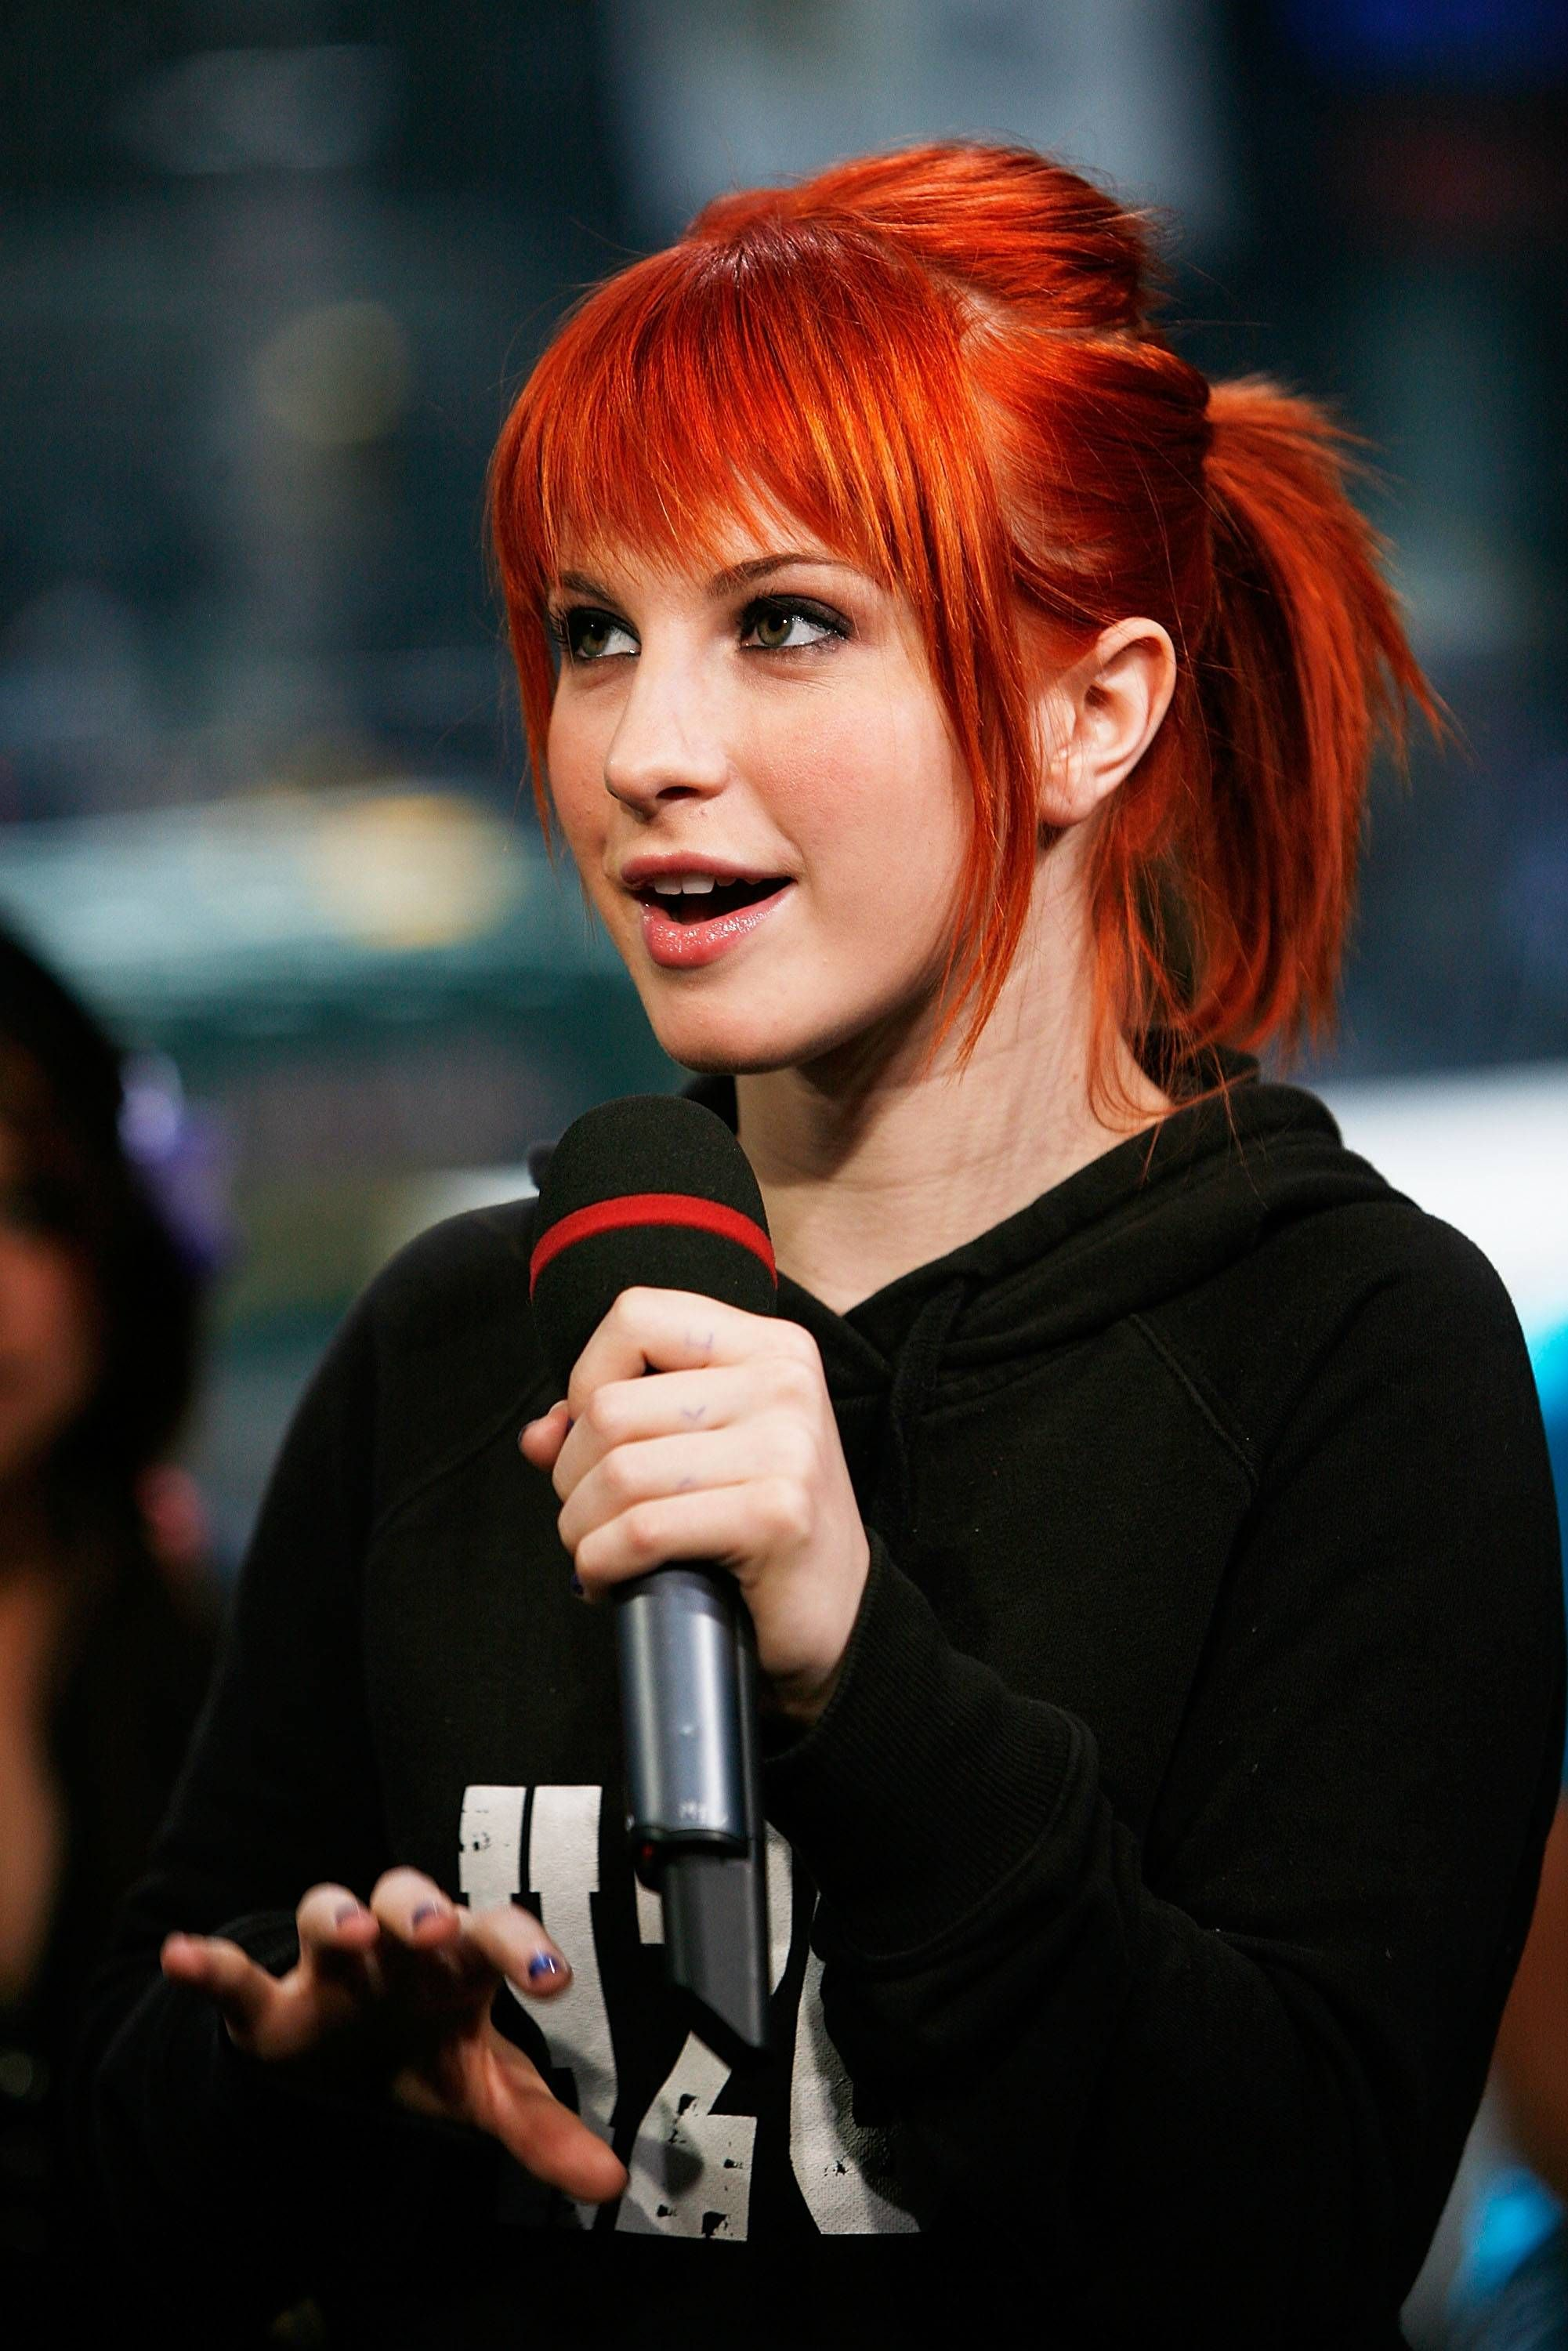 Hayley Williams nudes (32 photos) Erotica, Twitter, butt